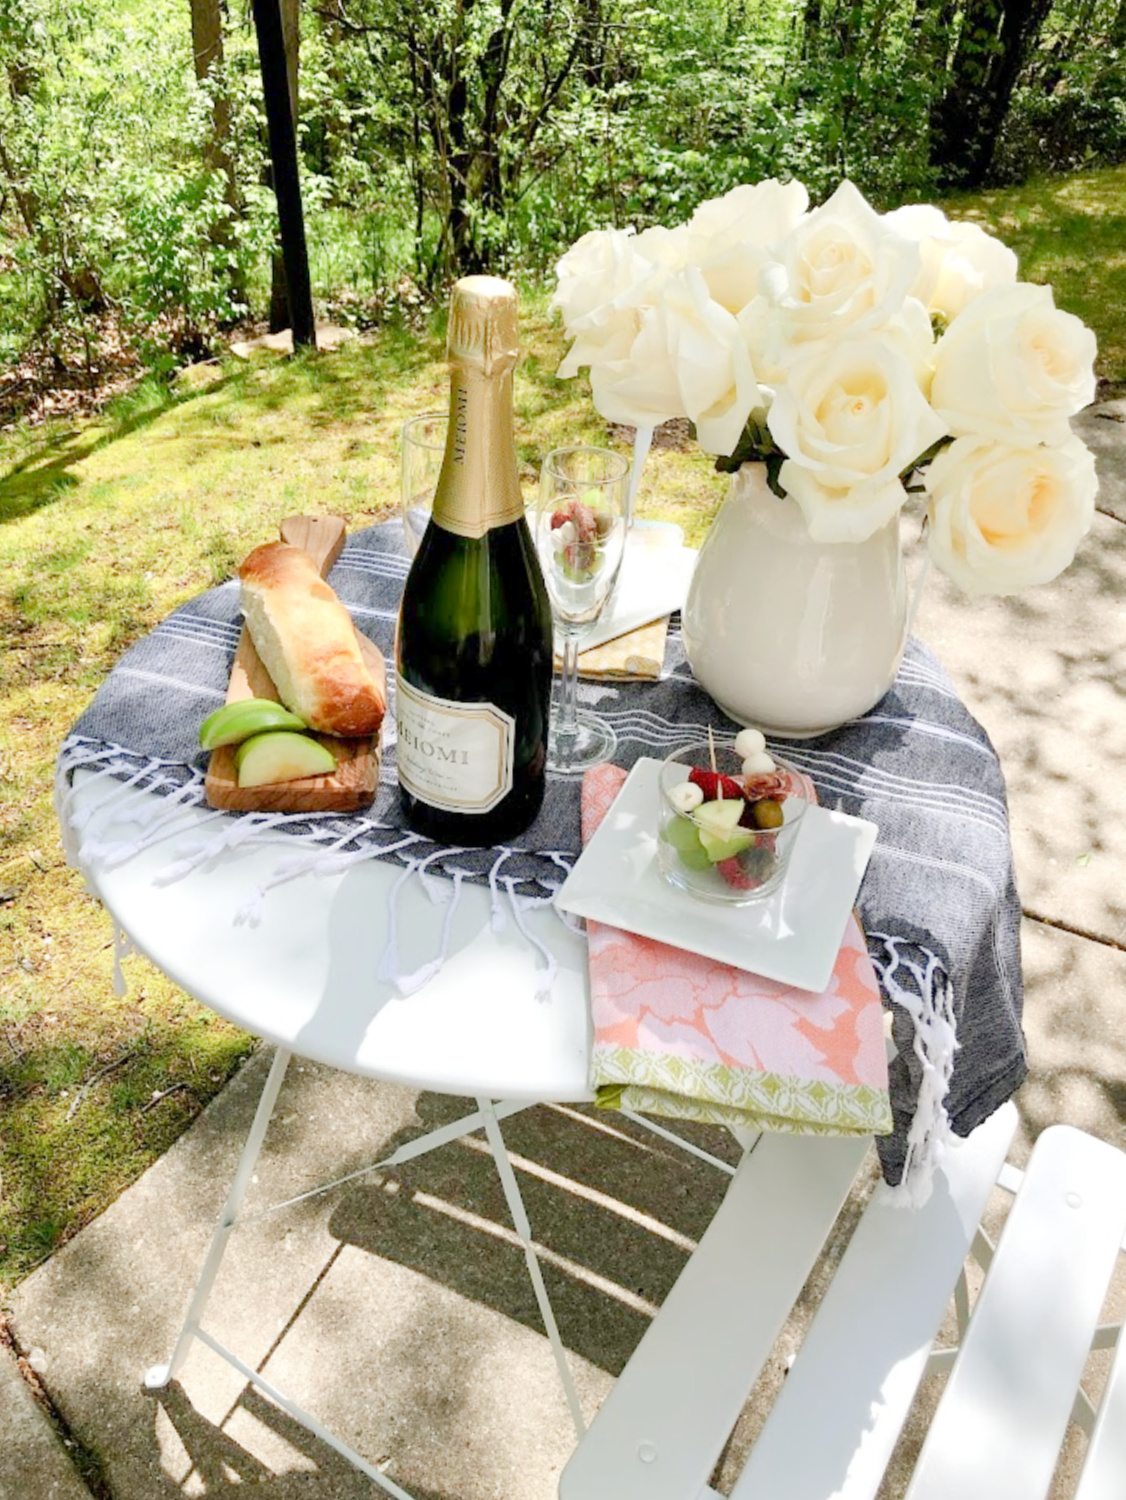 Petite French bistro table set with champagne, jarcuterie, and white roses - Hello Lovely Studio. #outdoordining #entertaining #frenchpicnic #jarcuterie